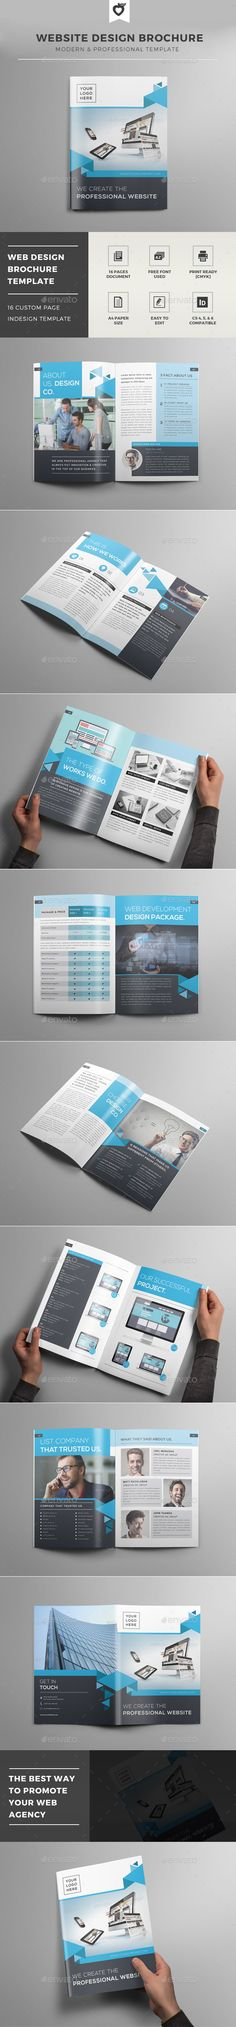 Website Design Brochure Template #design #broschüre Download: http://graphicriver.net/item/website-design-brochure-template/12502679?ref=ksioks